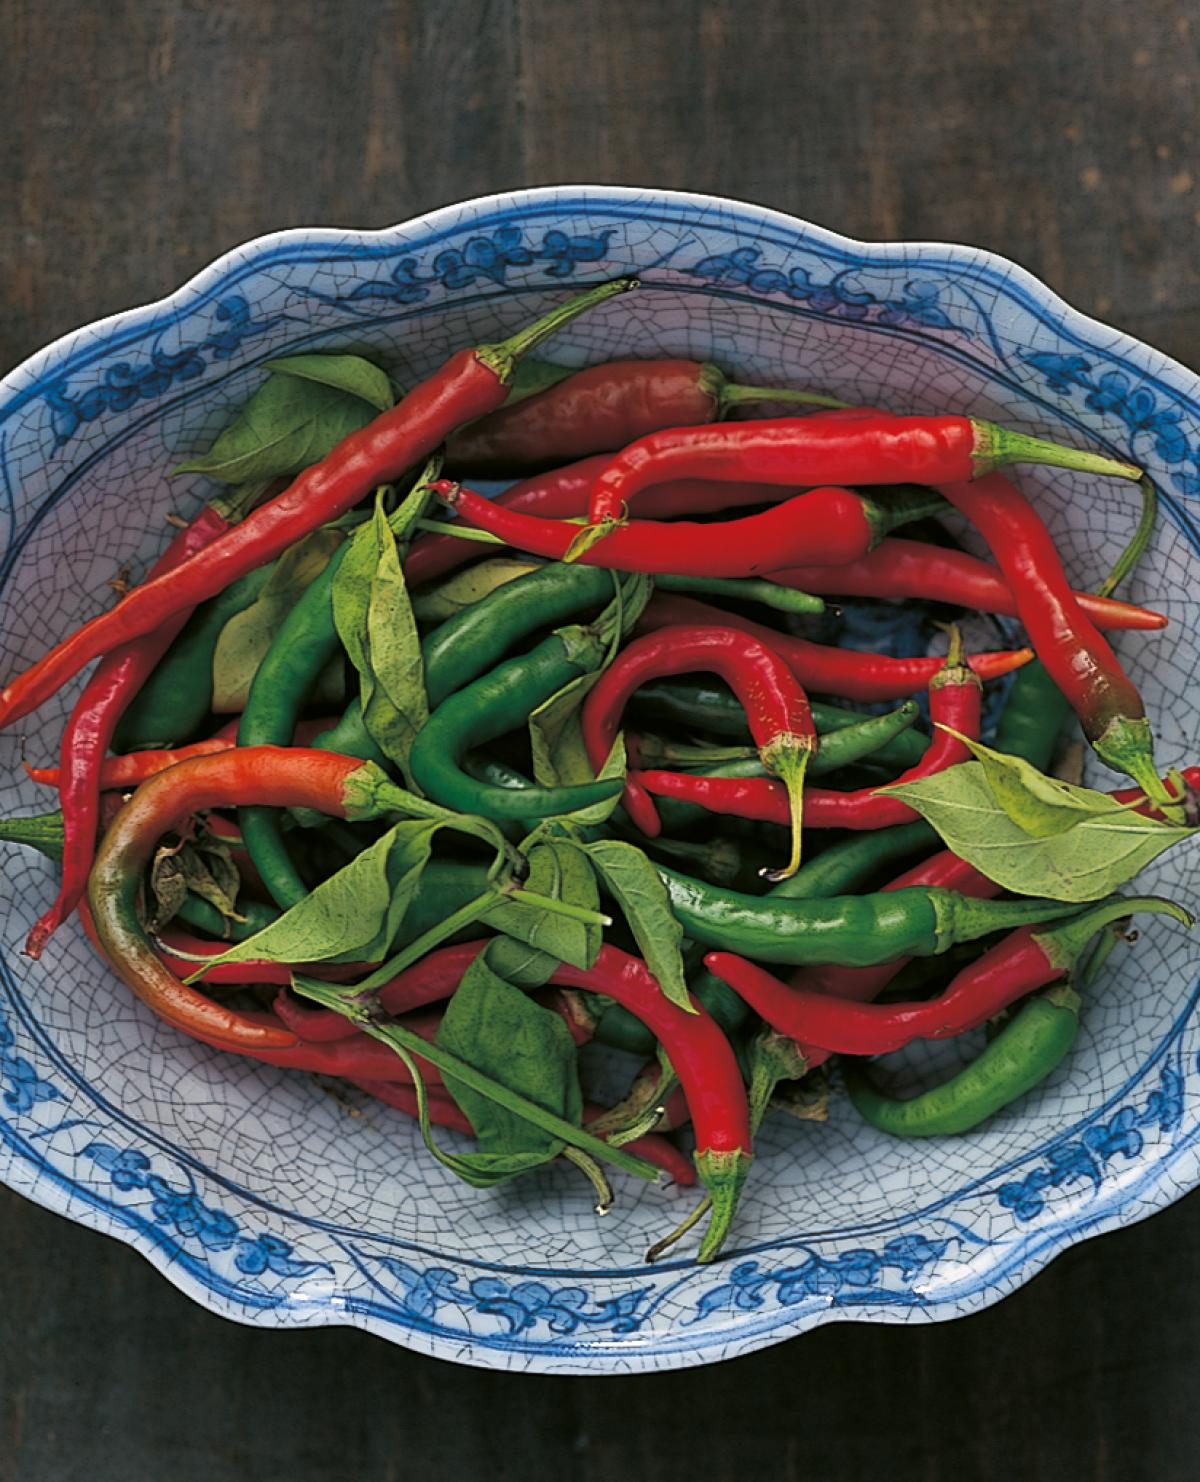 A picture of Delia's Spicy Recipes recipes